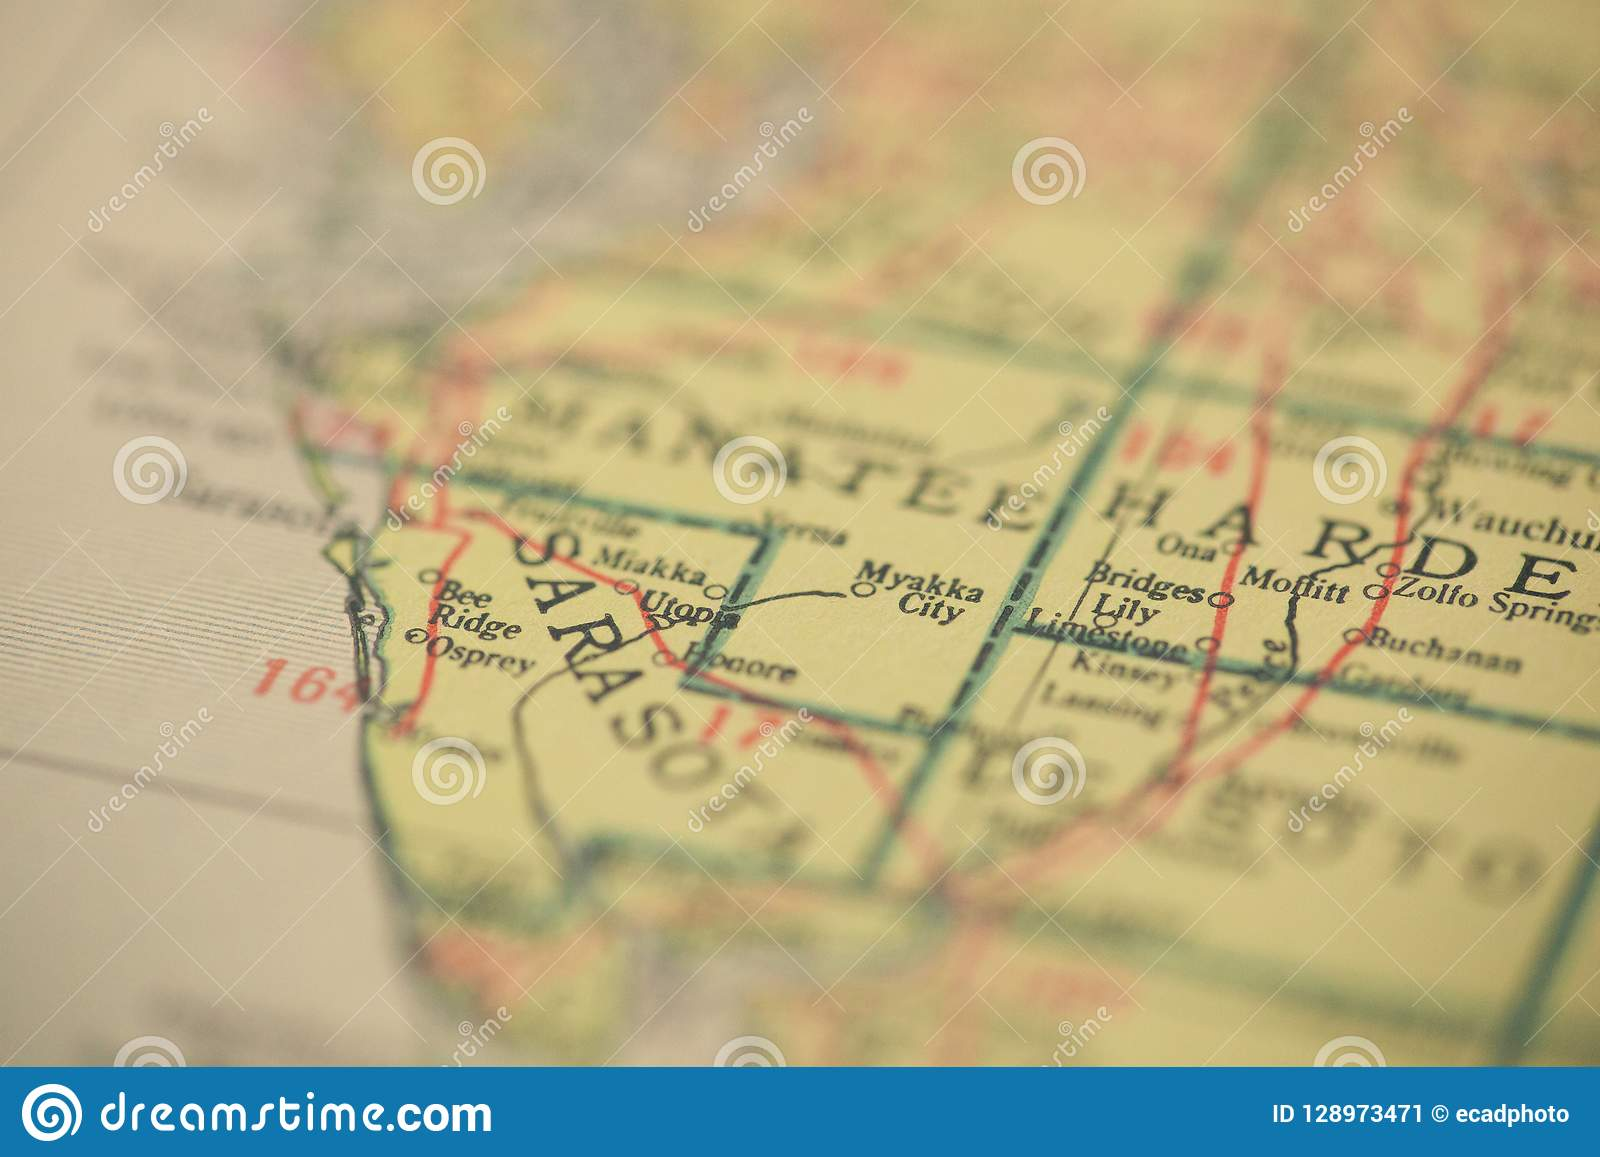 Map Of Florida Sarasota.Sarasota Florida Map Stock Image Image Of Sarasota 128973471